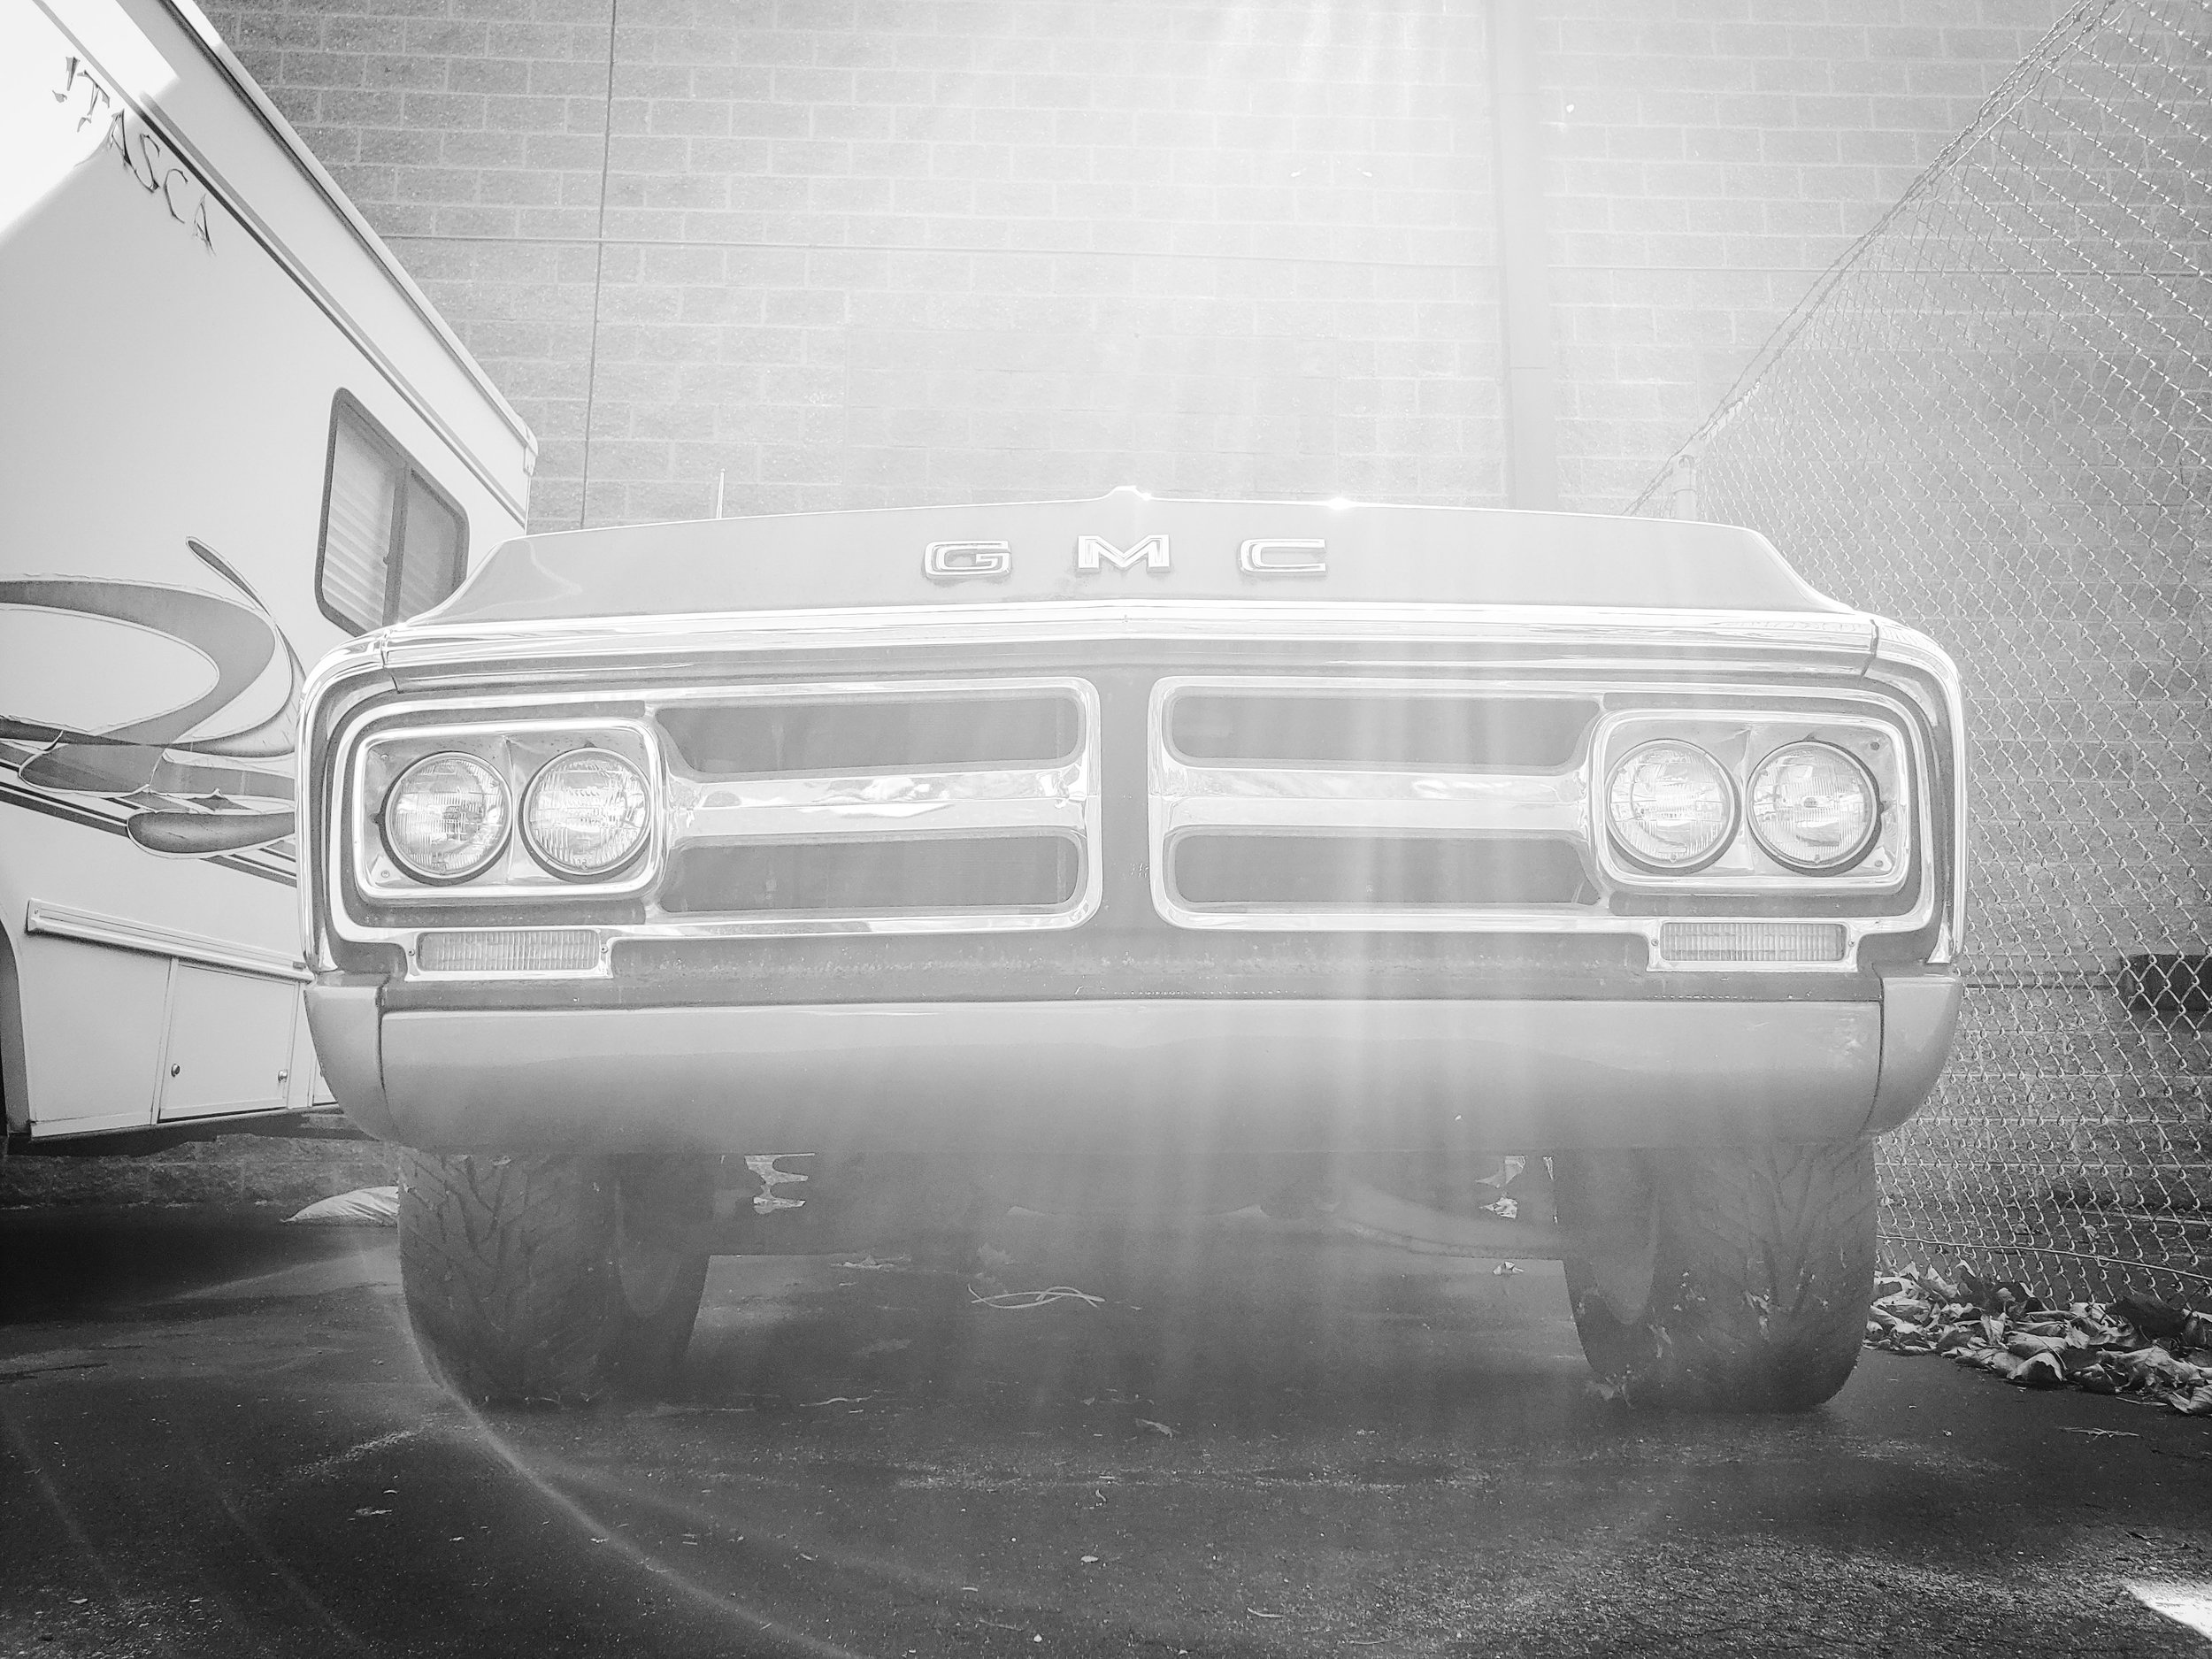 Rebuilding doesn't mean you're broken - The MSG Daniel Lovell Foundation is a non-profit initiative aimed at combating veteran suicides through a variety of automotive-based programs. The MDLF is focused on providing a team setting that many veterans miss after completing their military service. Teams of veterans work together on automotive restorations, to donate to other in-need veterans, as awareness show cars, or as a team preparing for the 24 Hours of Lemons. It provides a setting where veterans can share stories, provide emotional support, and learn about veteran resources while working towards a common goal. The MDLF provides national awareness by participating in car shows, amateur races, and organizing other awareness events.—Zack R. Colbert MSG (USA Retired)Founder